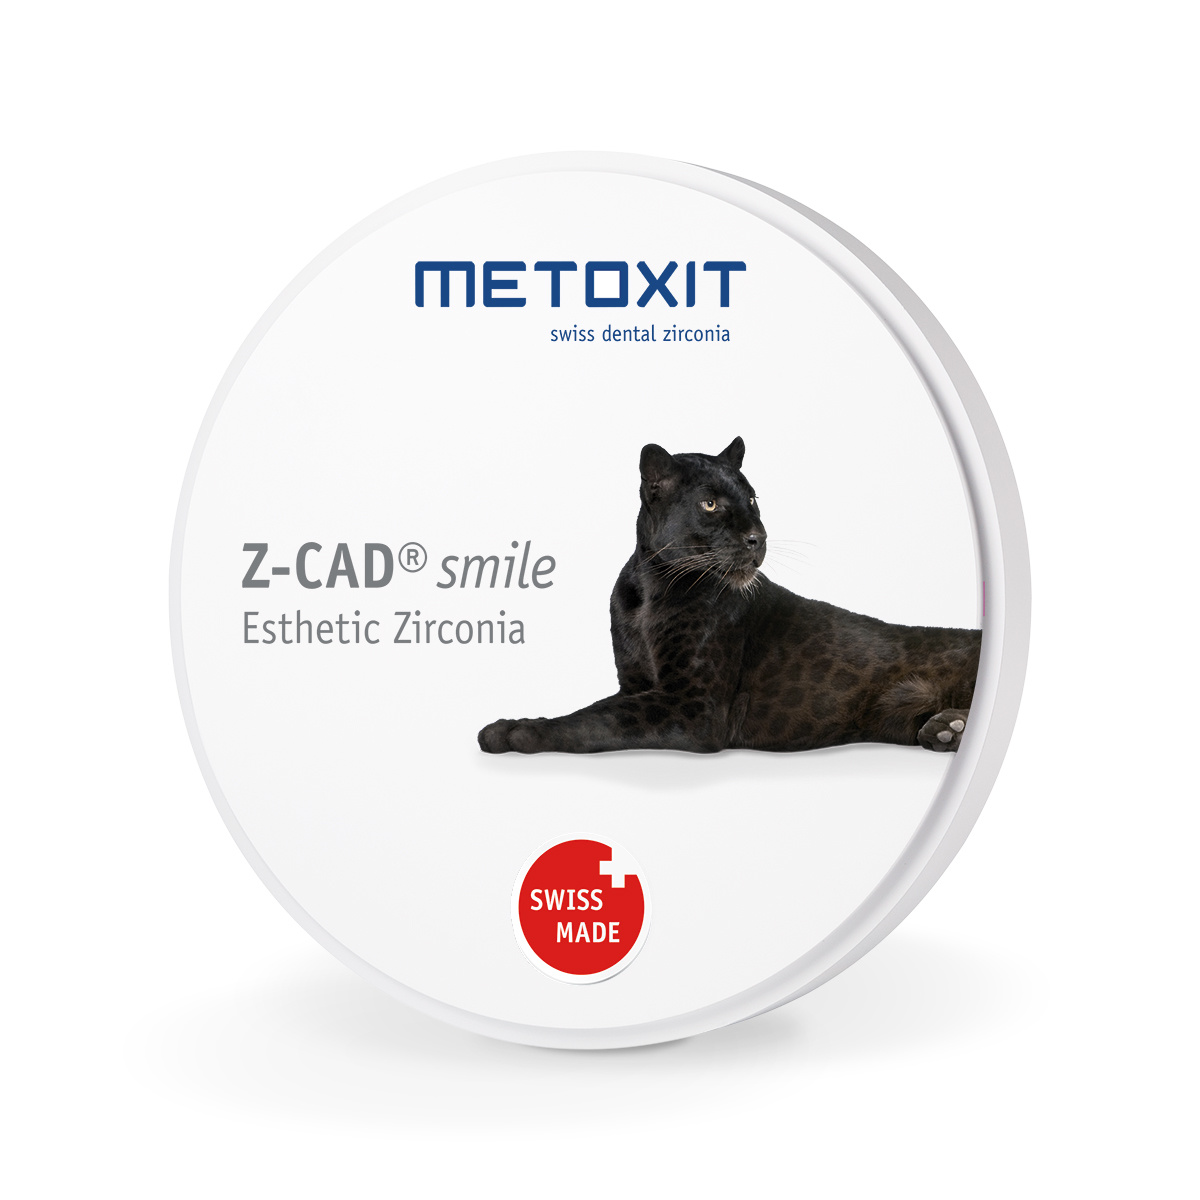 METOXIT Z-CAD® smile - 98.5x14mm